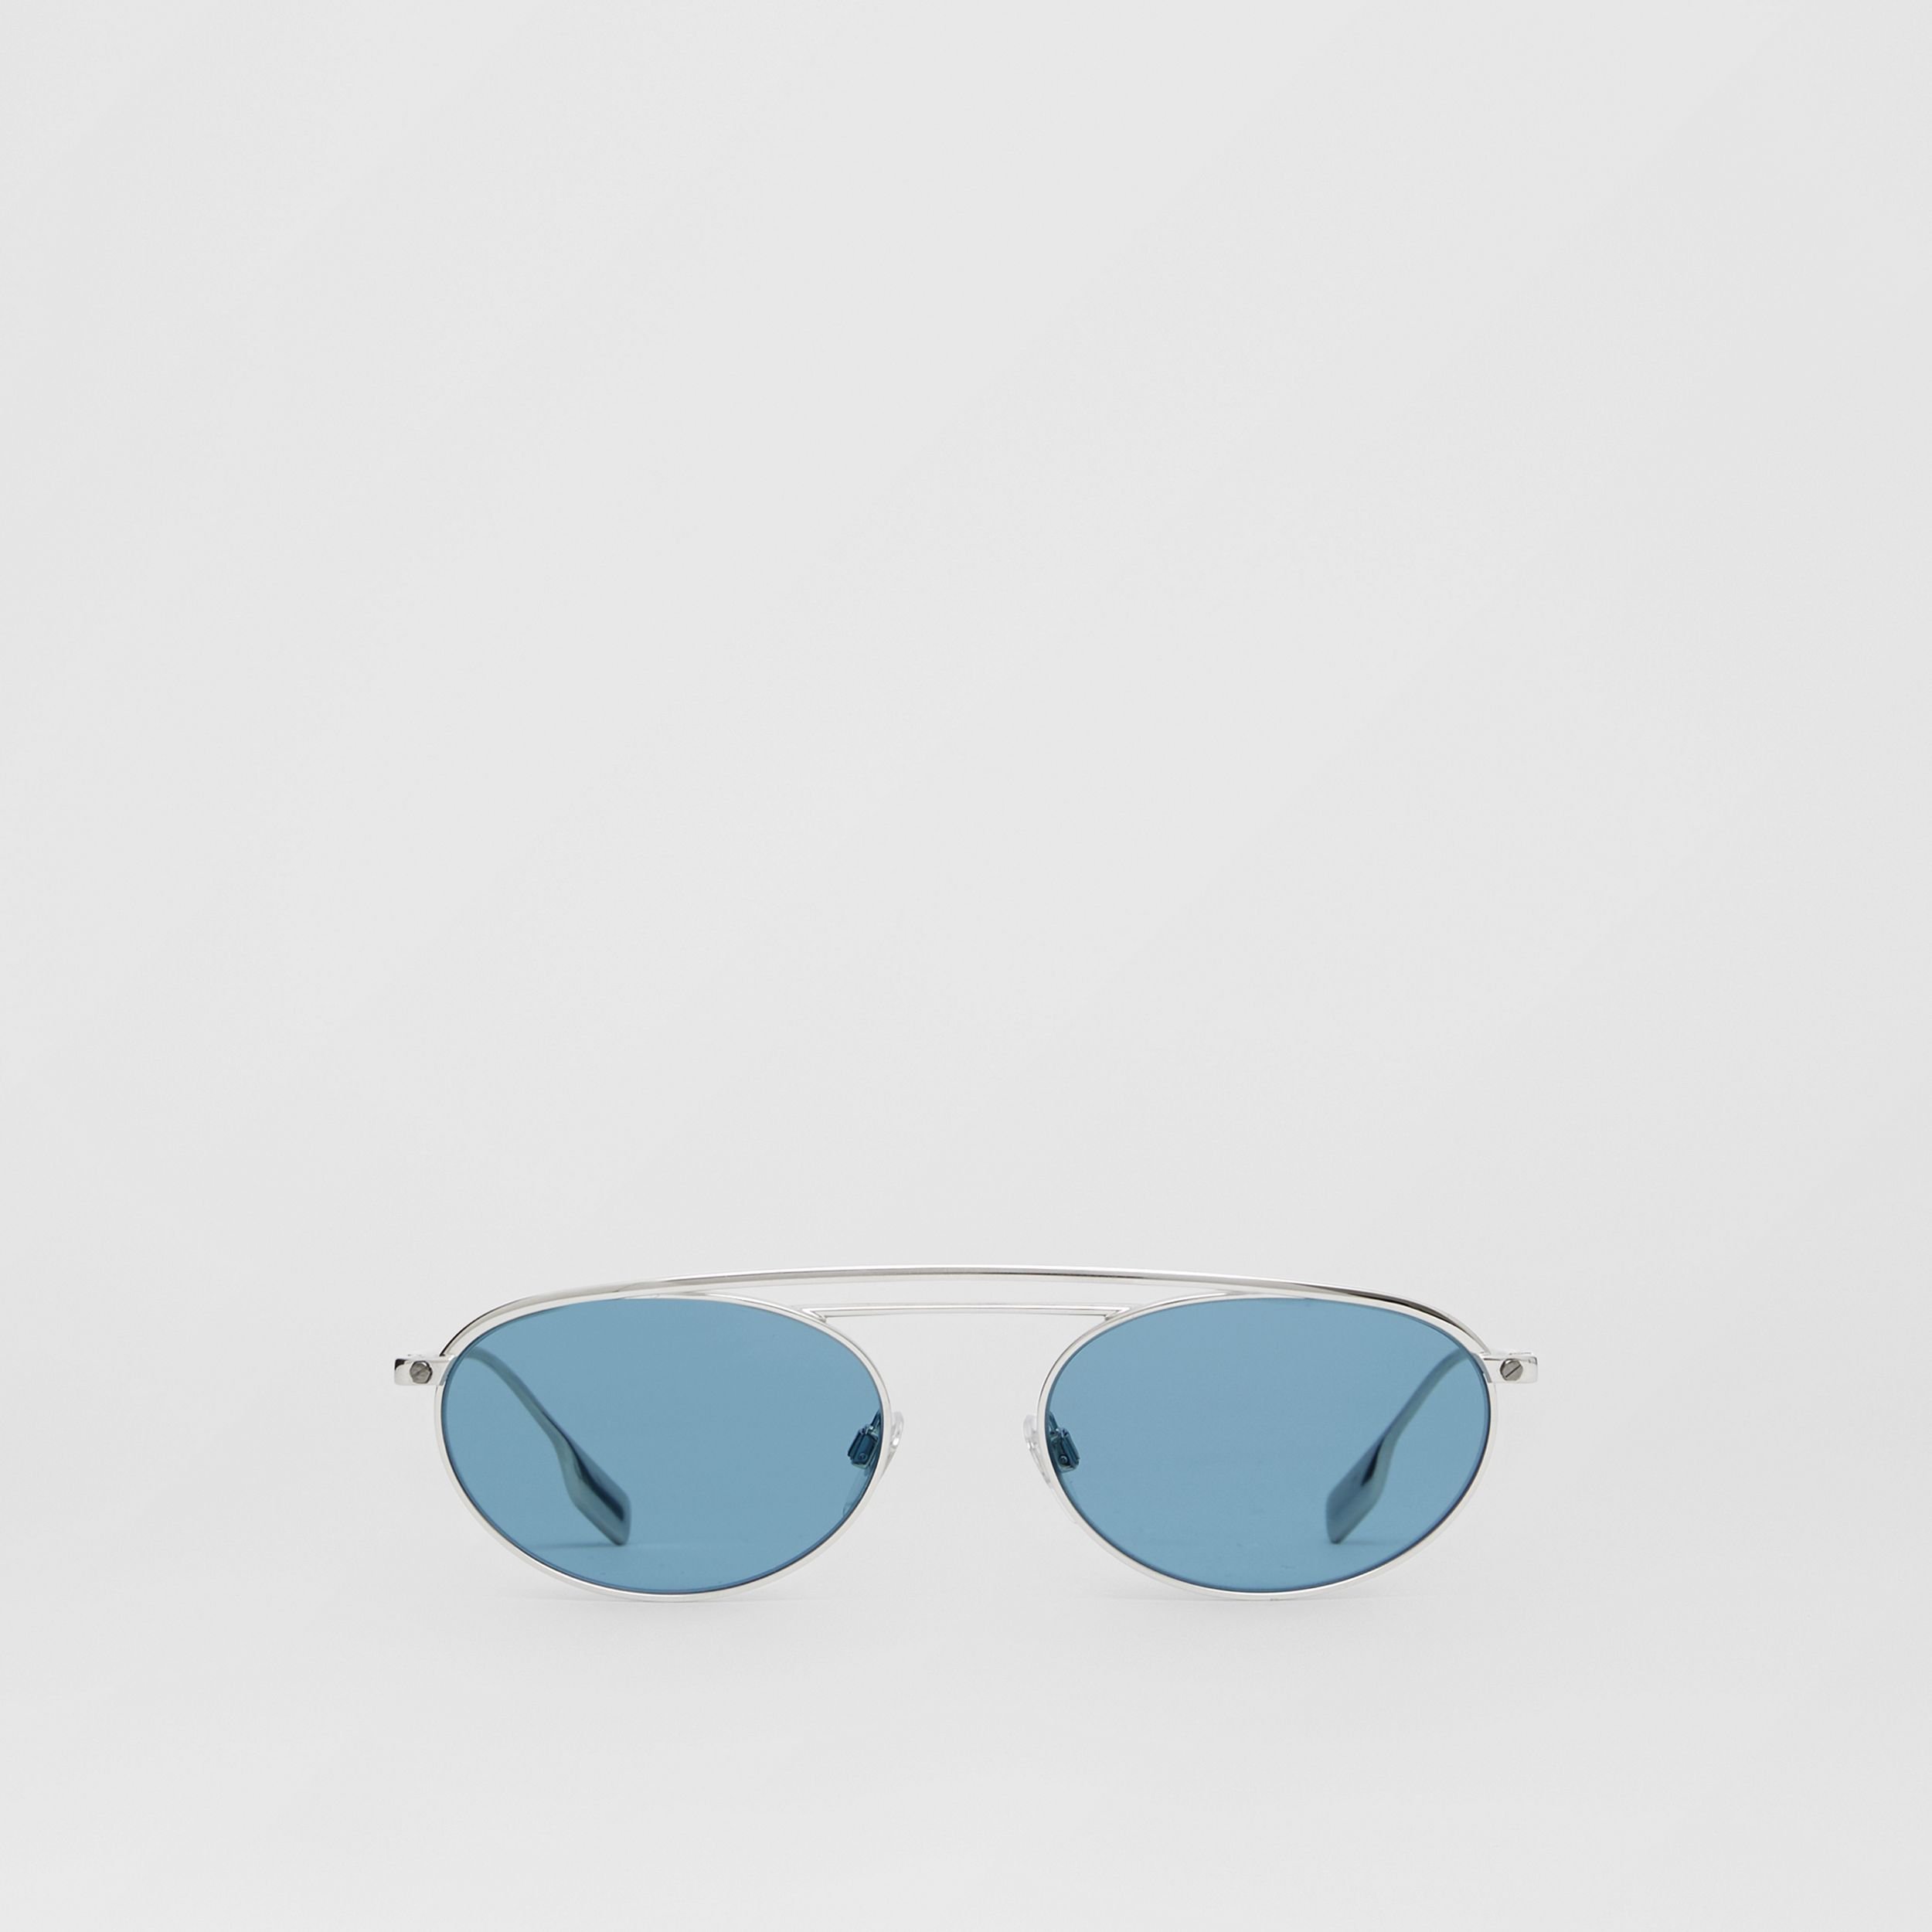 Oval Frame Sunglasses in Light Blue - Women | Burberry - 1